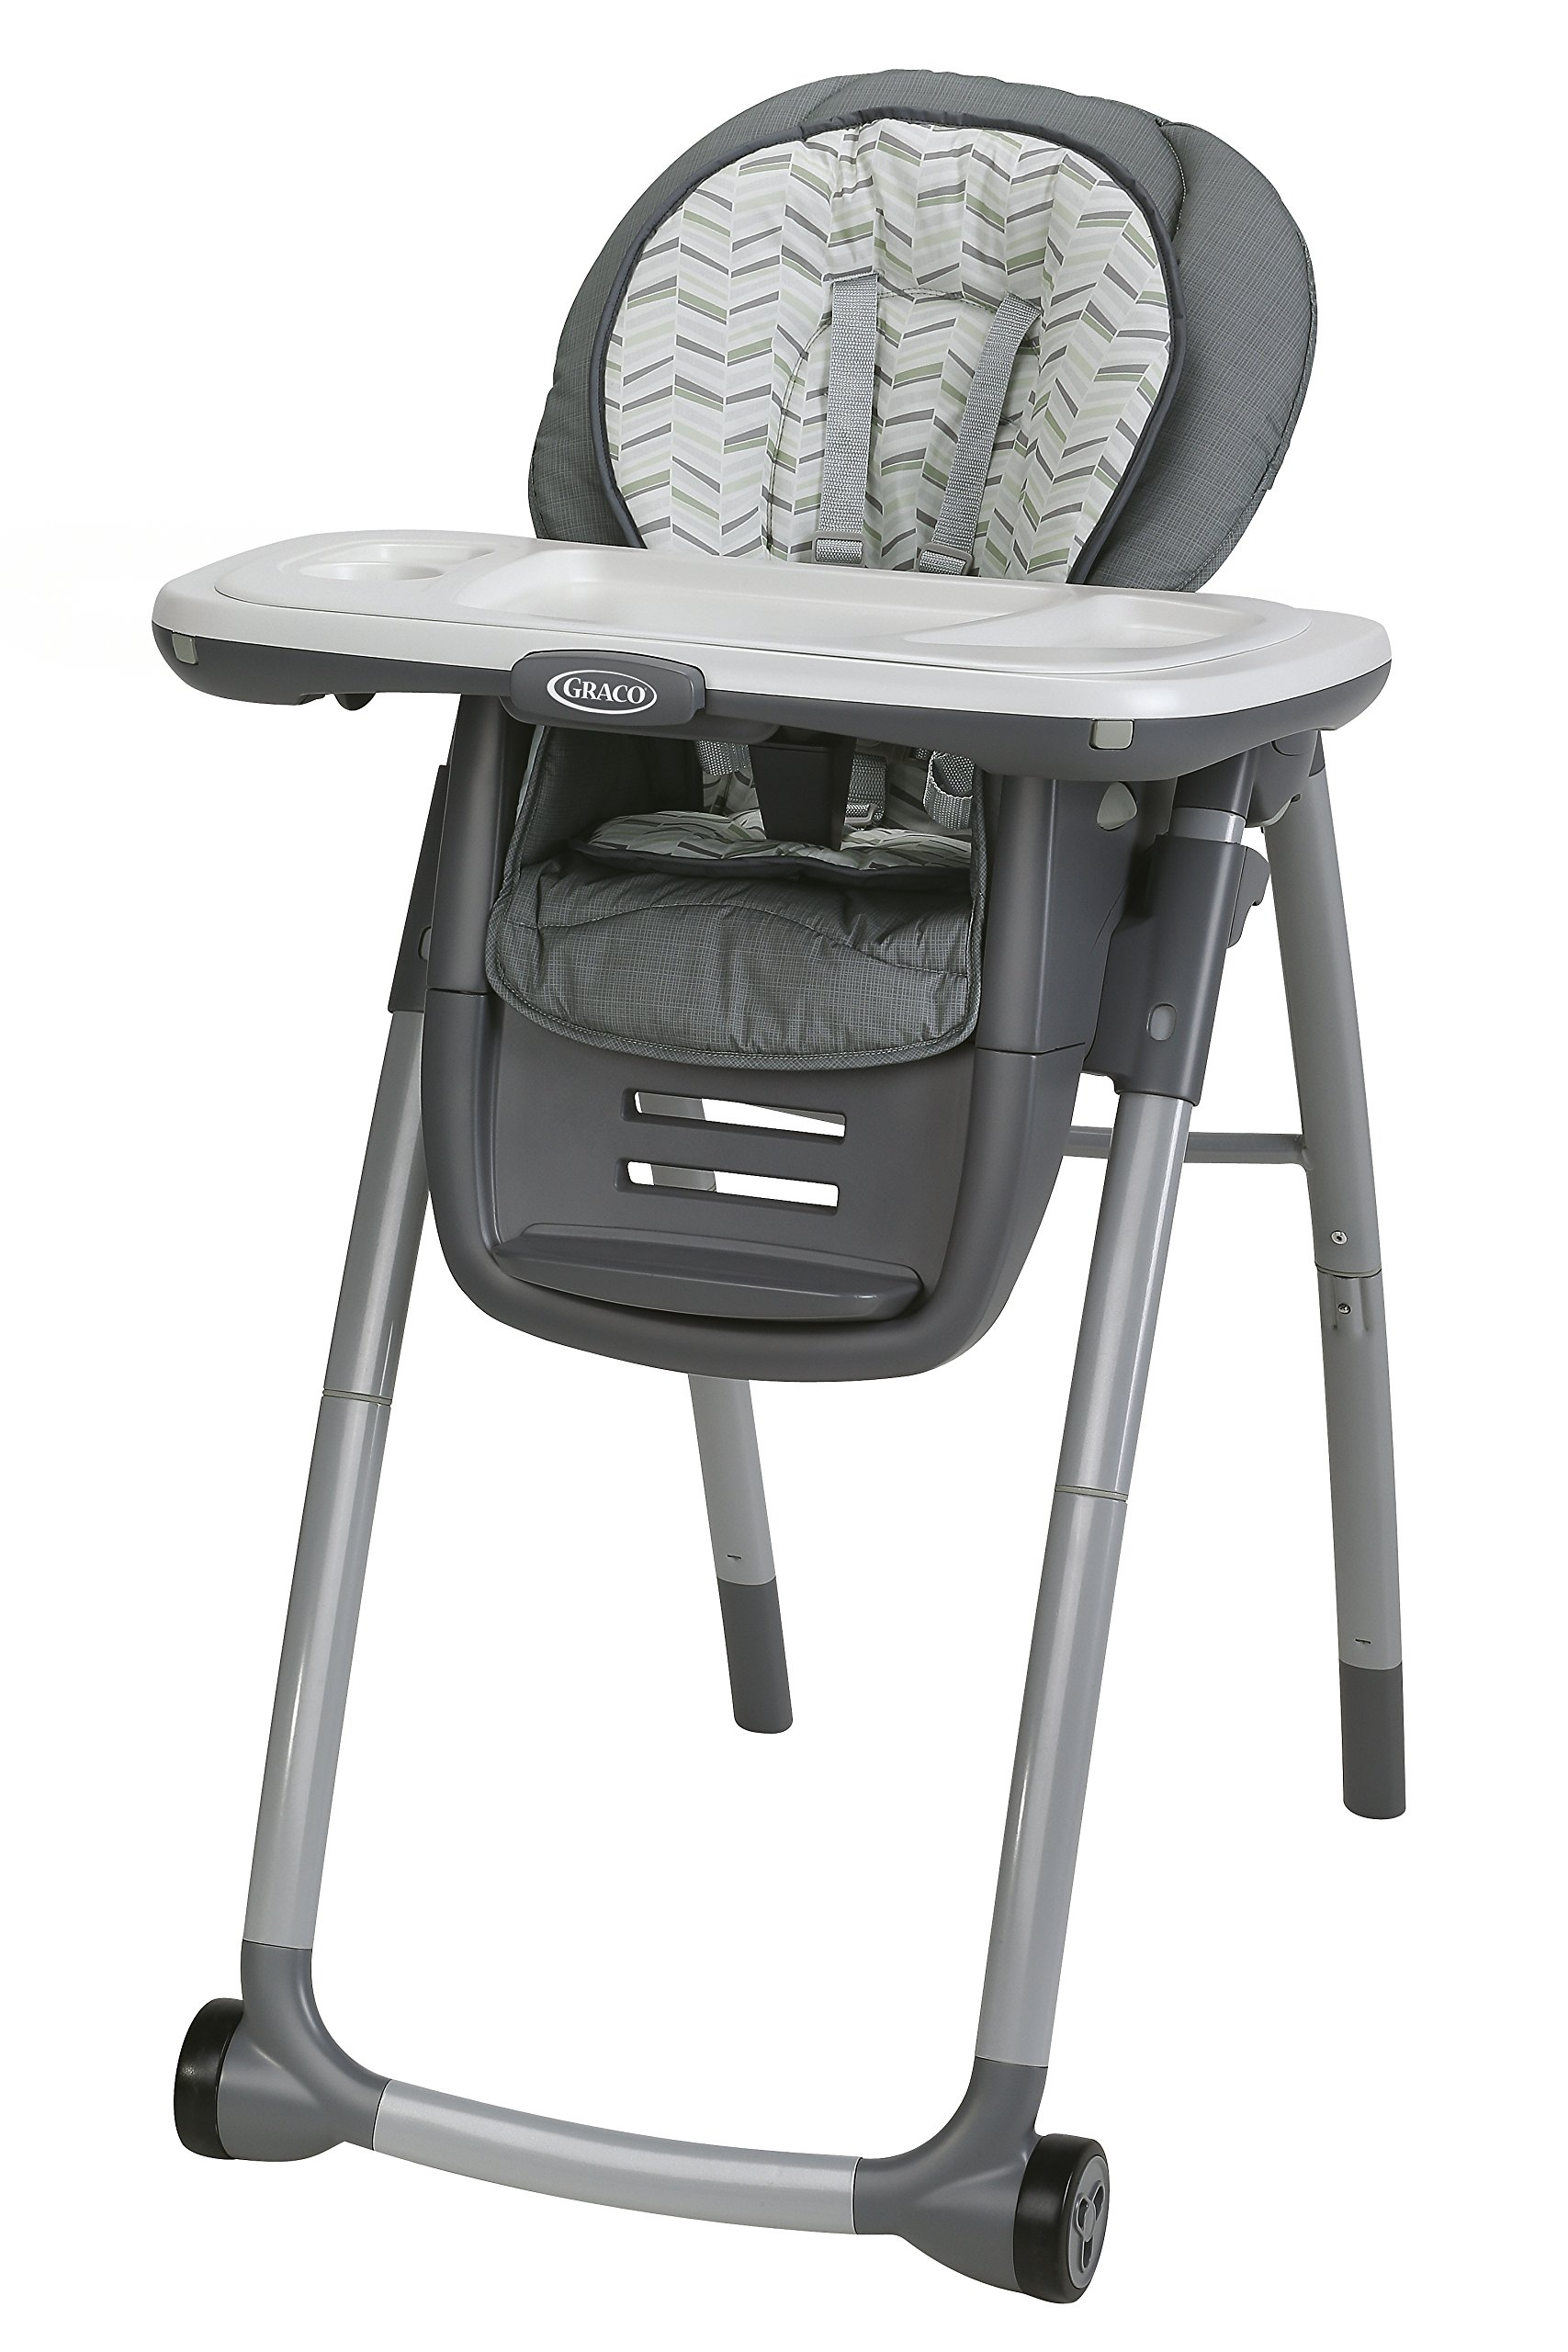 Graco Table2Table Premier Fold 7-in-1 Convertible High Chair, Landry